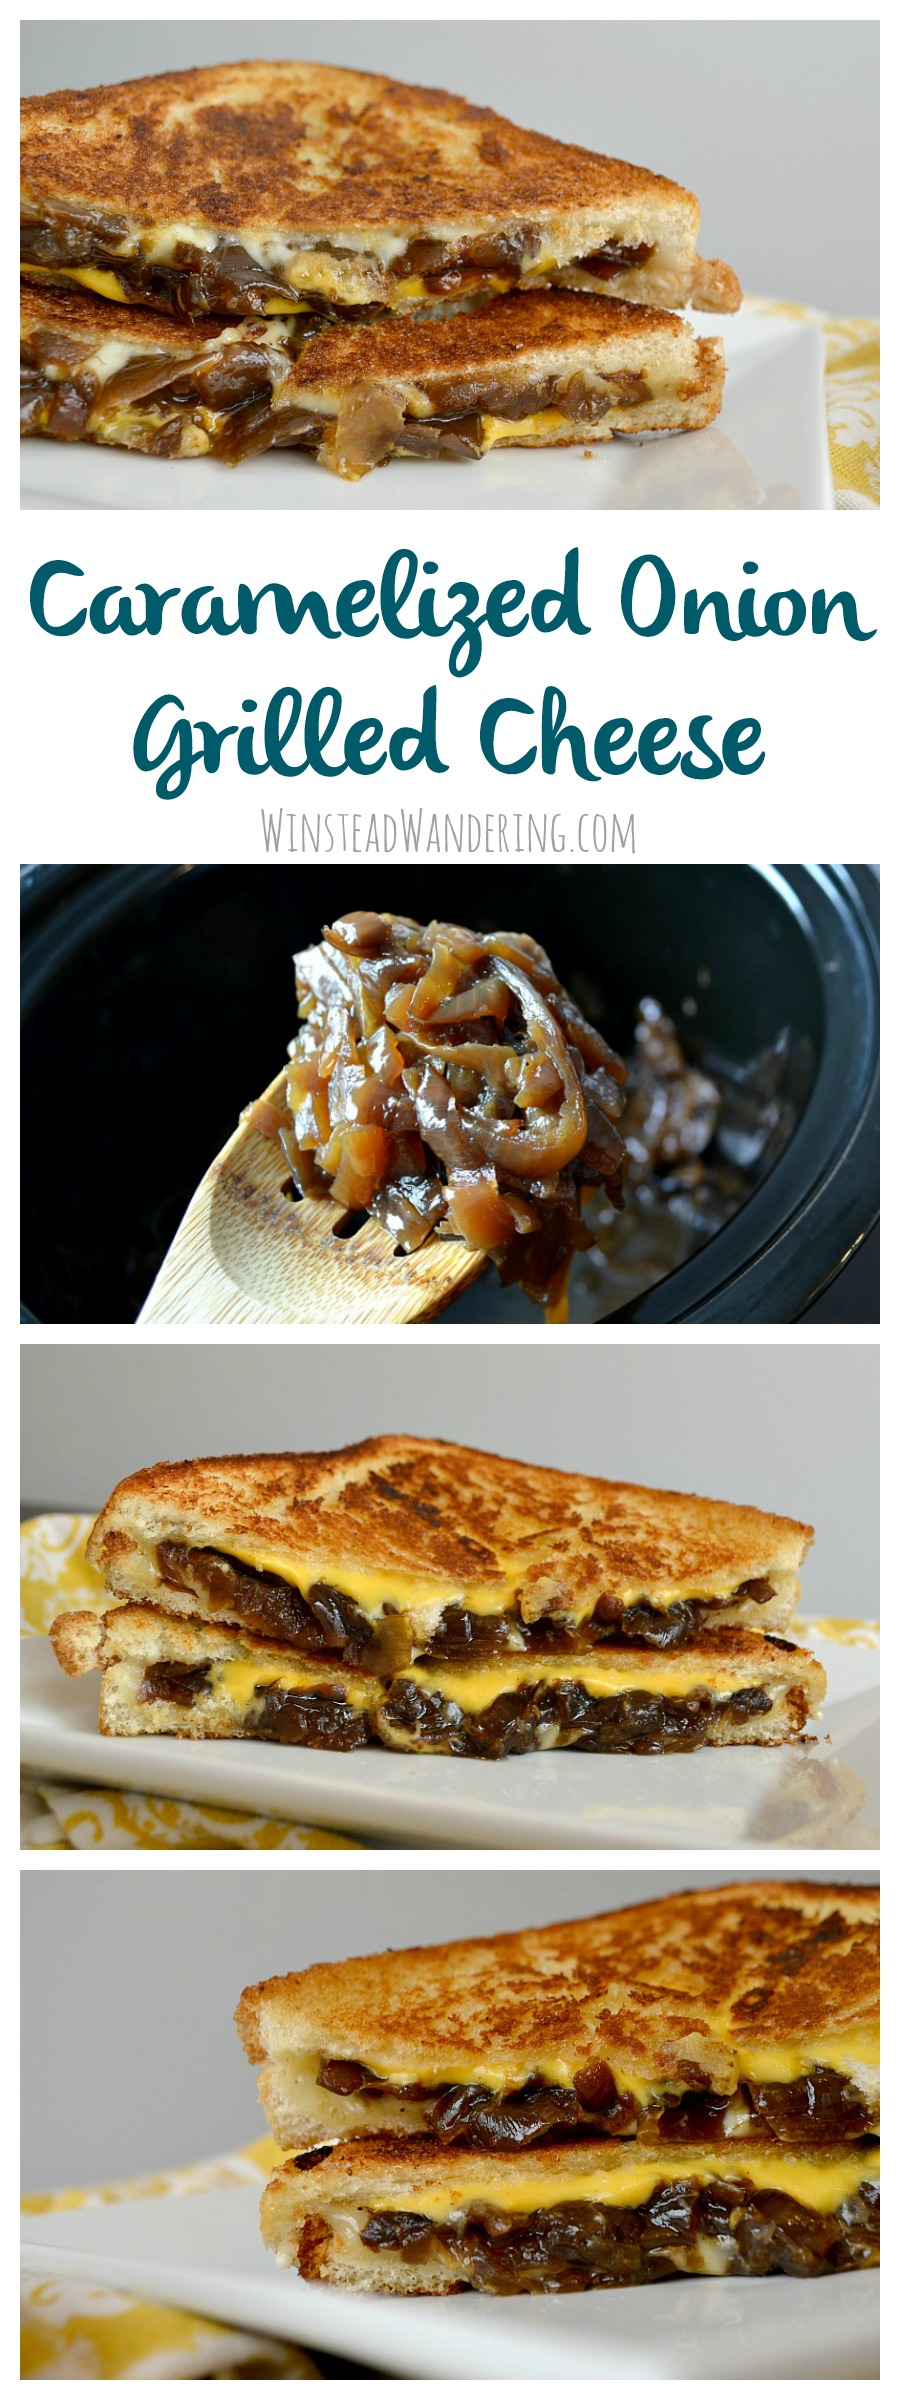 Step up your toasted sandwich game by making gooey, sweet, savory, and unique Caramelized Onion Grilled Cheese Sandwiches.